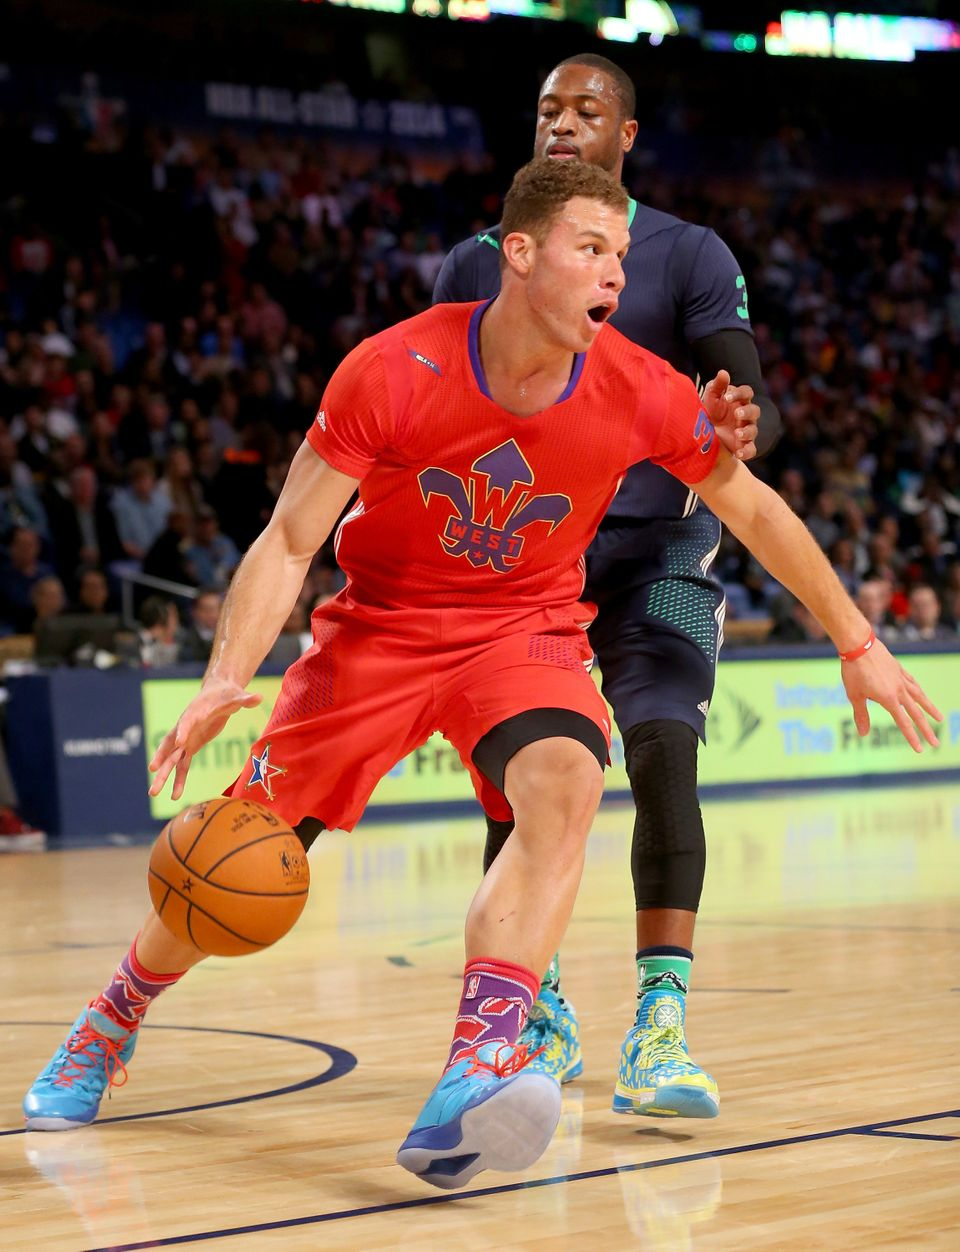 NEW ORLEANS, LA - FEBRUARY 16:  The Western Conference's Blake Griffin #32 of the Los Angeles Clippers takes the ball as the